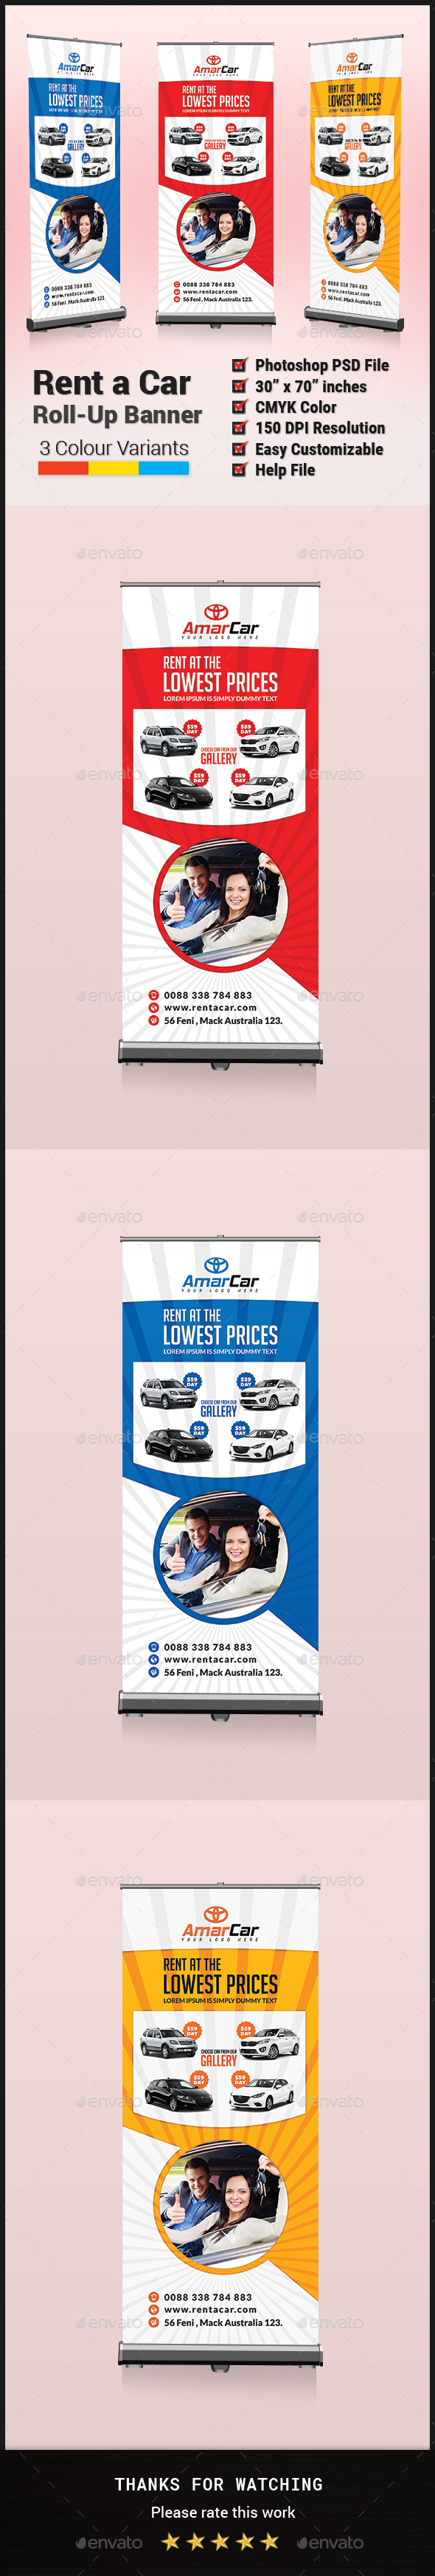 Rent a Car Roll-Up Banner - Signage Print Templates